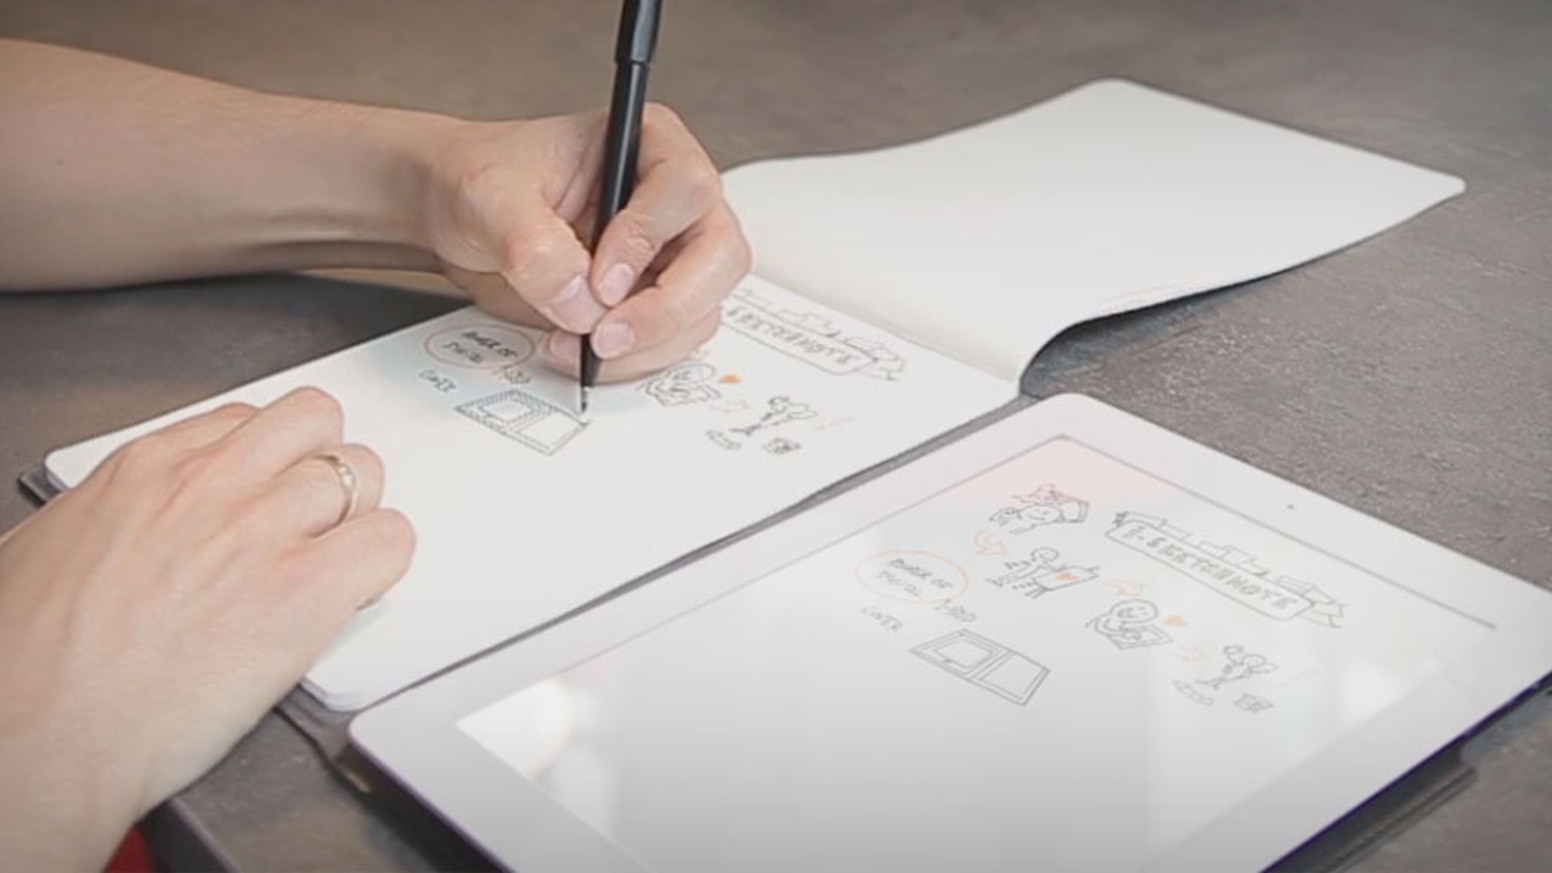 Give a digital life to your paper creations with the Slate. Put any kind of paper or notebook on it and draw your imagination. Your creations are magically digitized in real time!